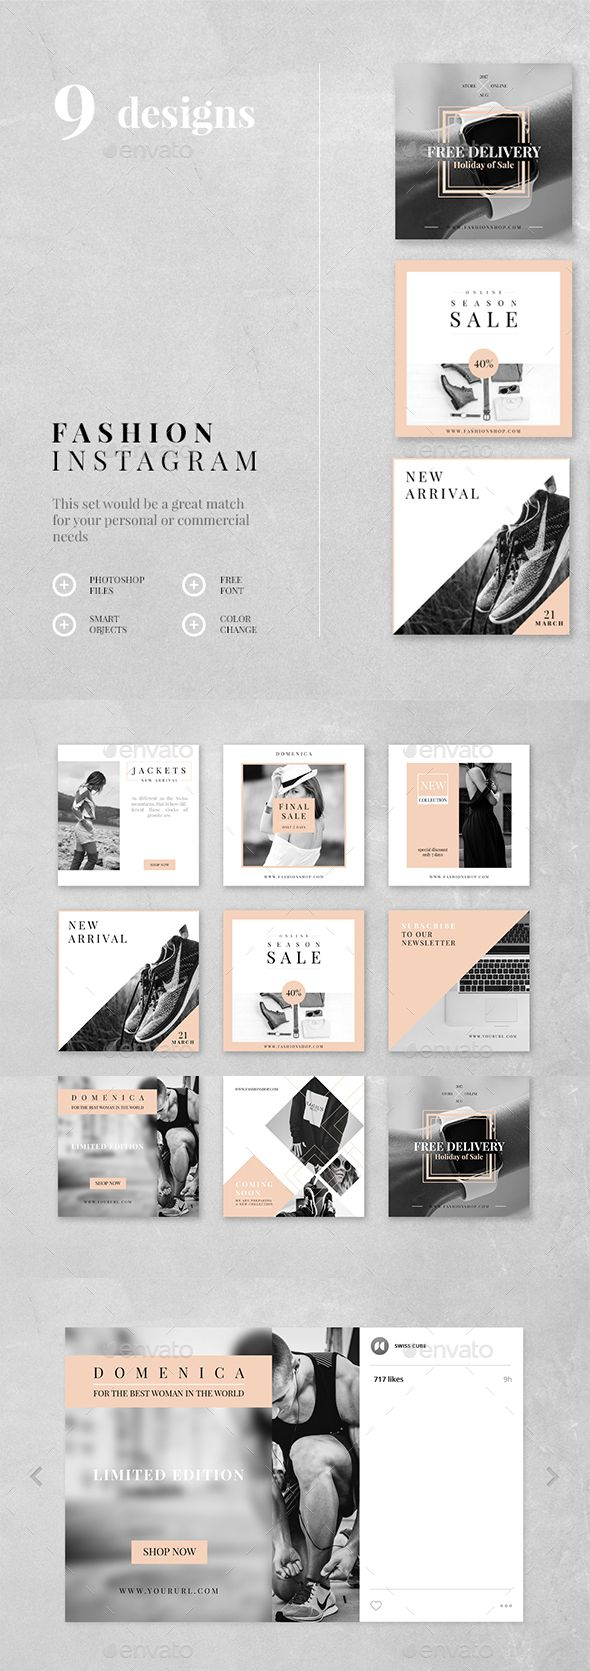 Pin By Bashooka Web Graphic Design On Banner Templates Design